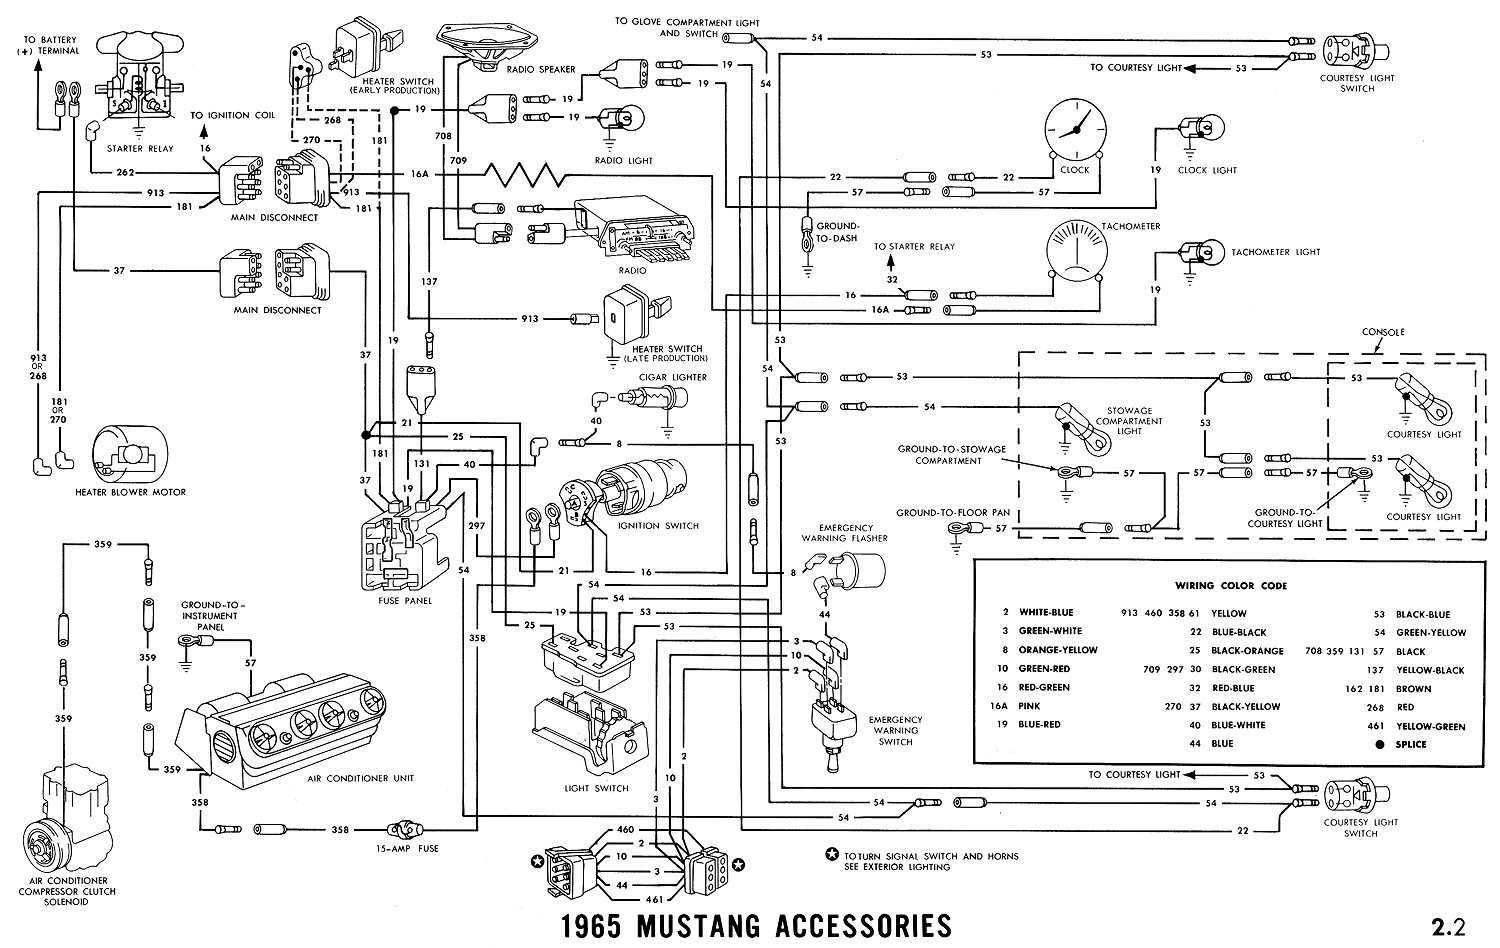 1965i diagrams 1266868 ford transit radio wiring diagram wiring 98 mustang gt stereo wiring harness at bakdesigns.co